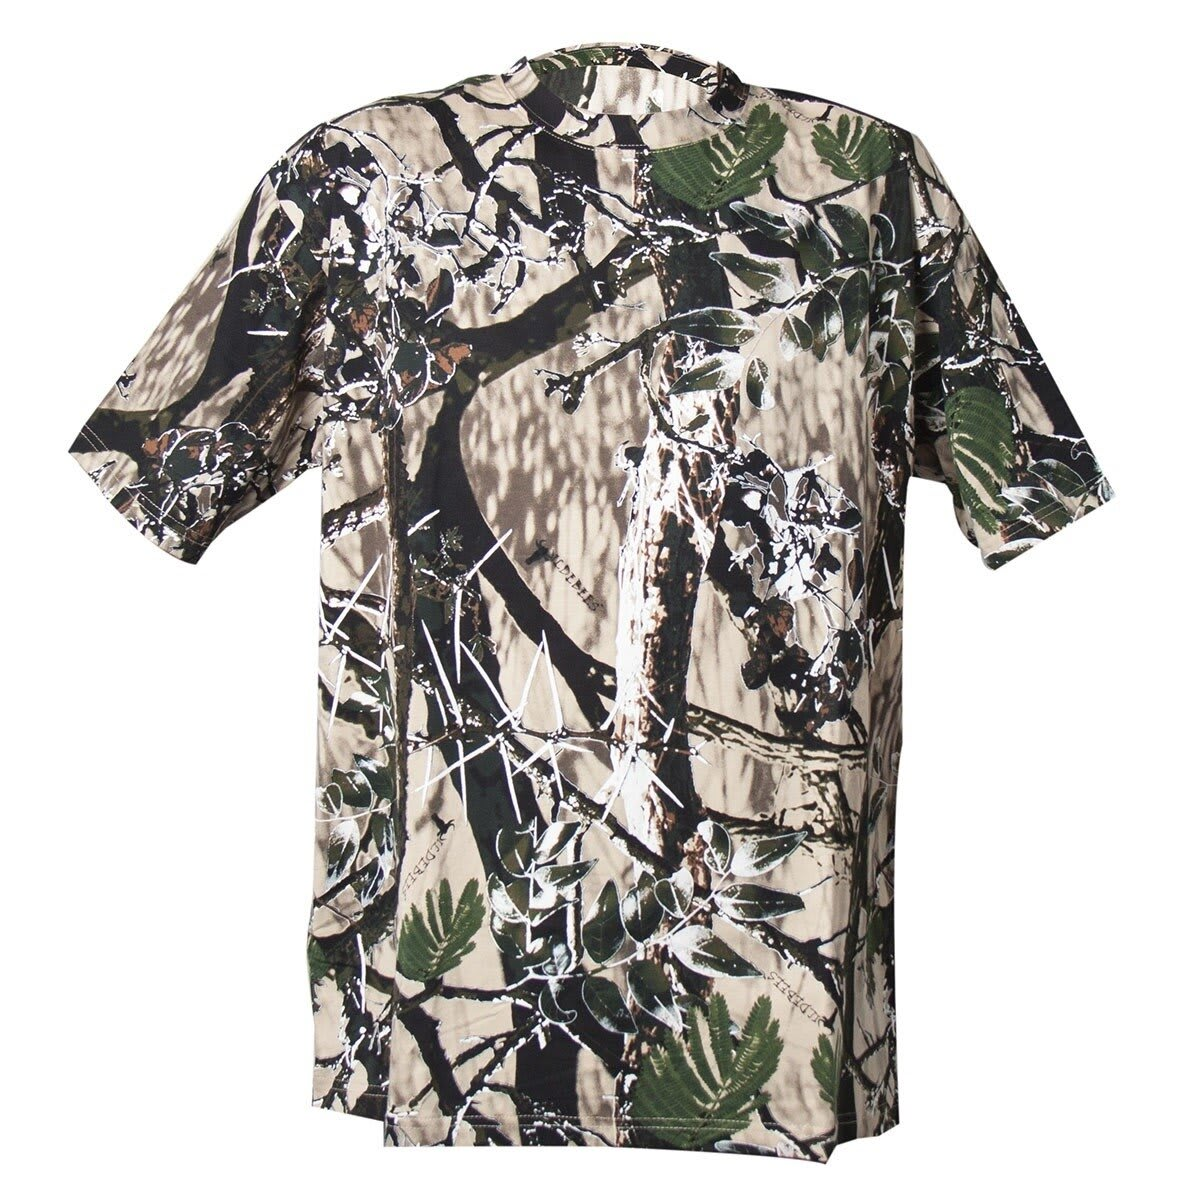 Wildebees Men's Short Sleeve Camo Tee 2XL-5XL